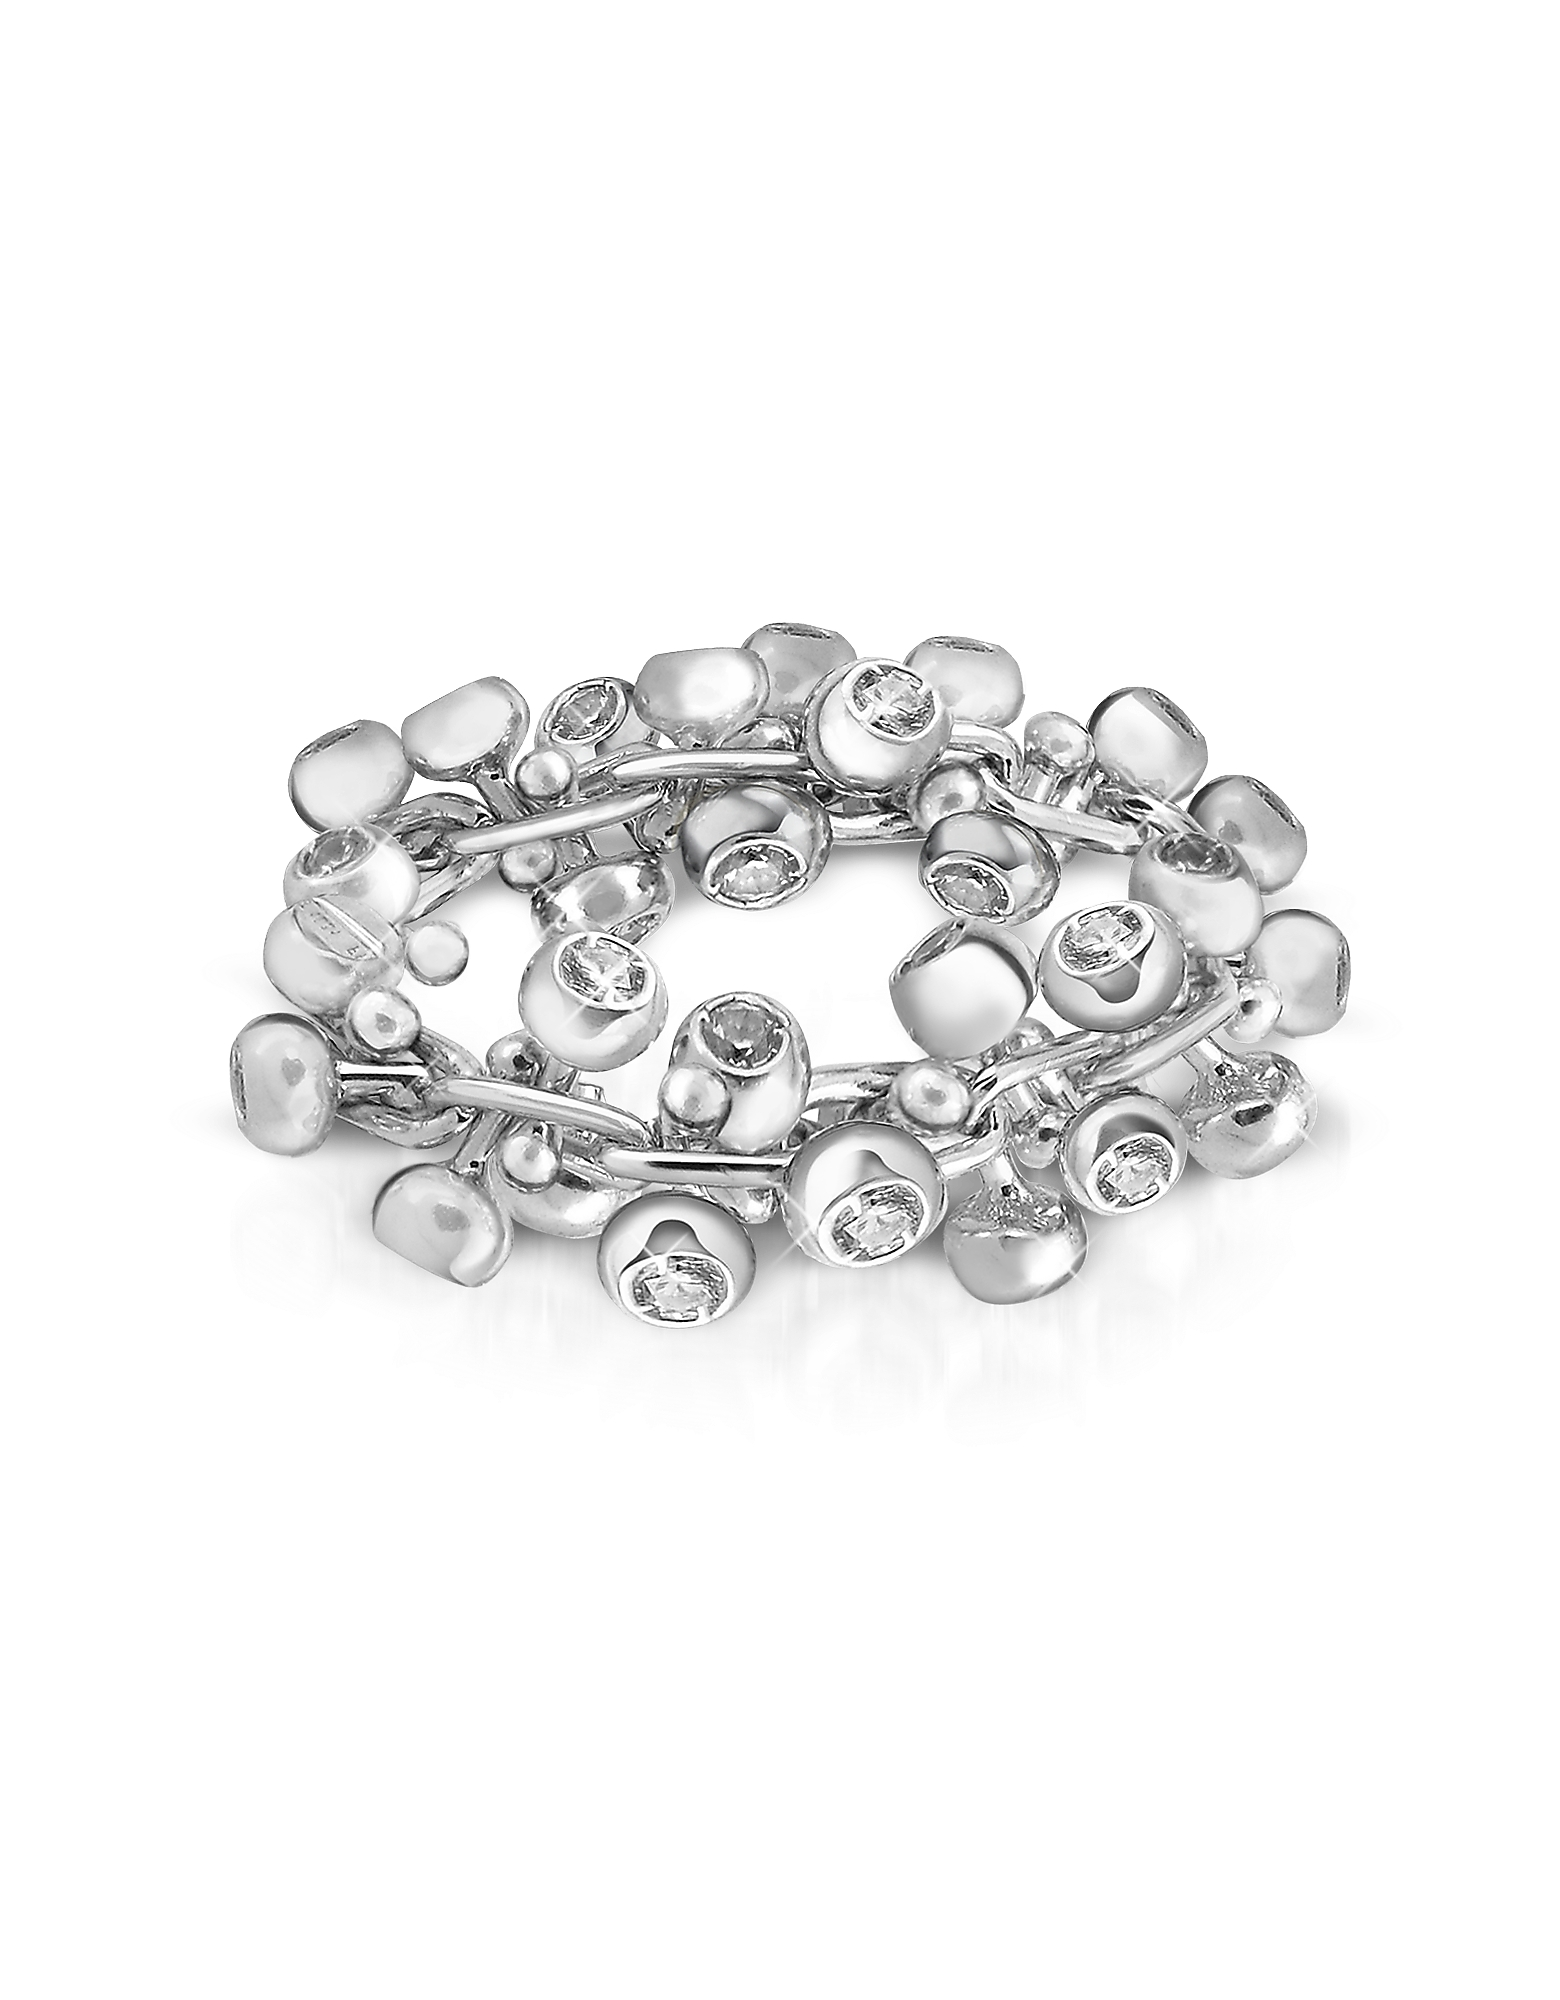 Orlando Orlandini Rings, Diamond Studs 18K White Gold Band Ring